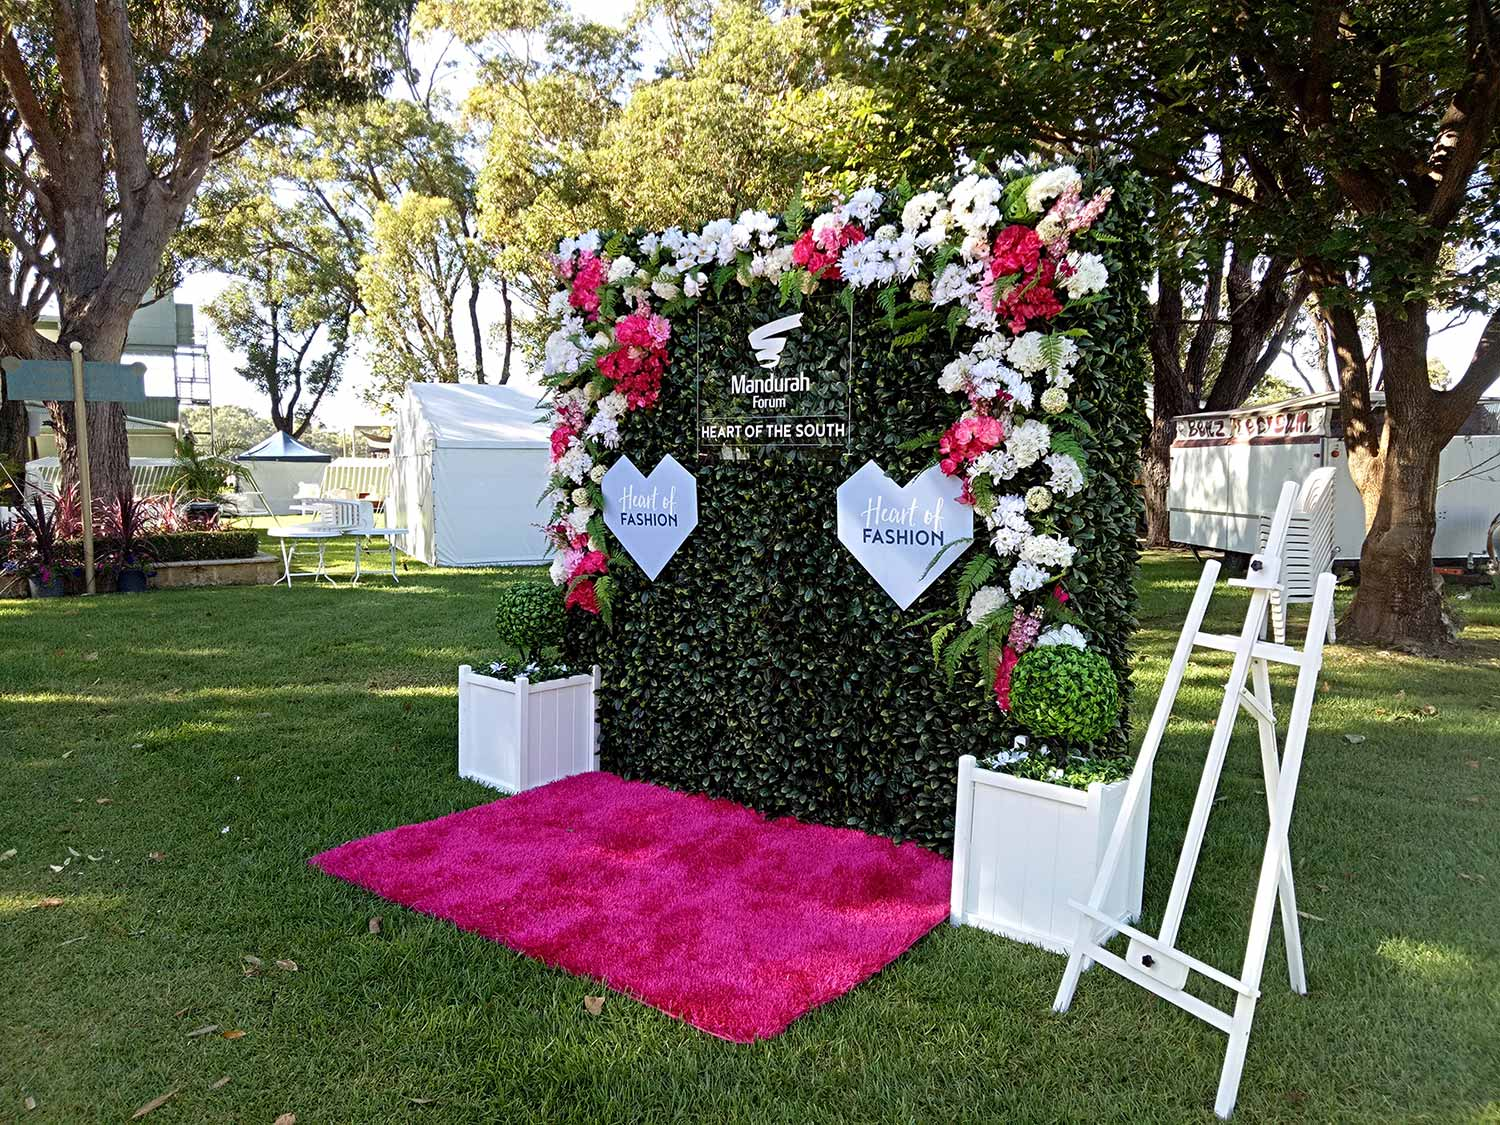 Selfie wall composed of red carpet, hedge panel and floral embellishments for fashion promotion at Mandurah Forum shopping centre